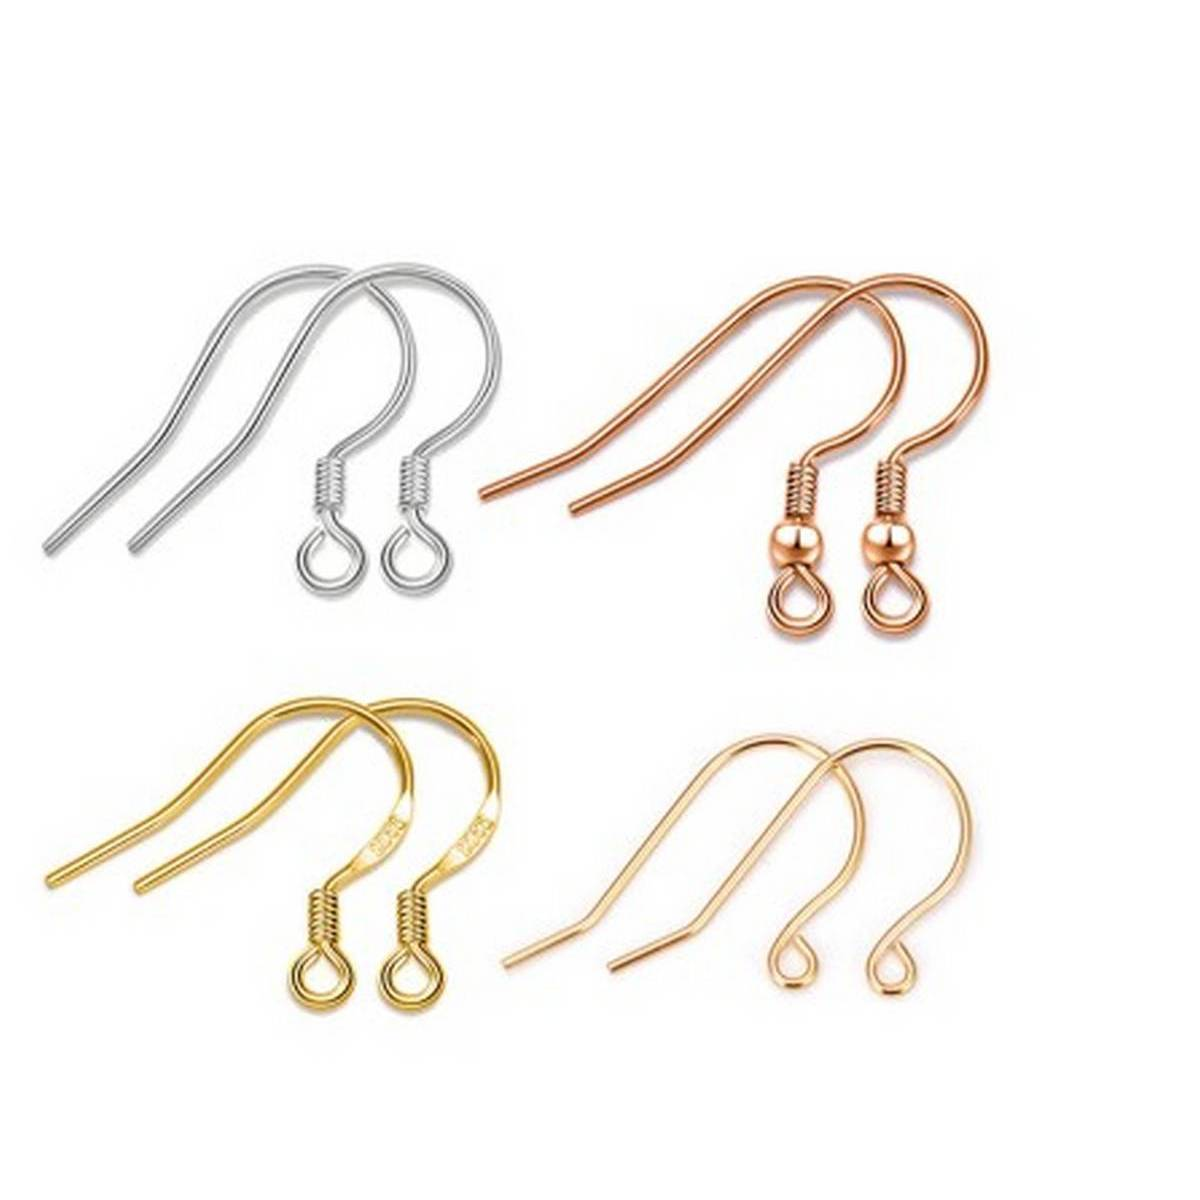 40 PCs / 20*17mm Gold Antique bronze Ear Hooks Earrings Clasps Findings Earring Wires For Jewelry Making Supplies Wholesale